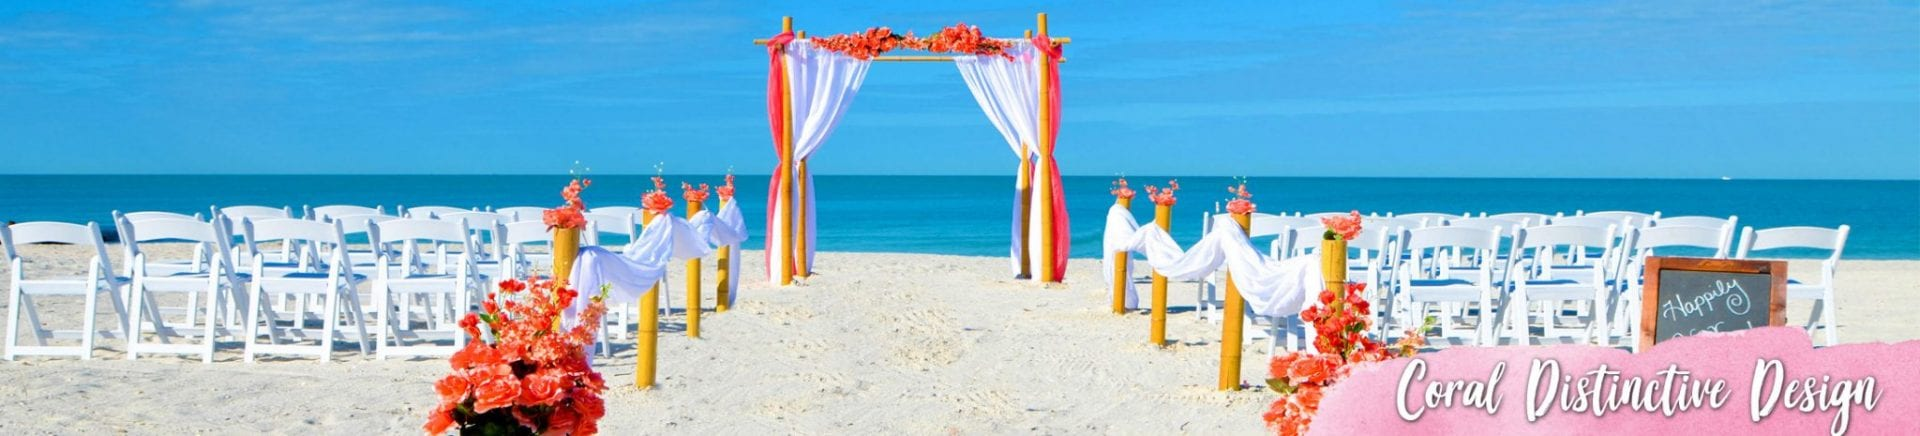 Coral color and white design wedding canopy on the beach